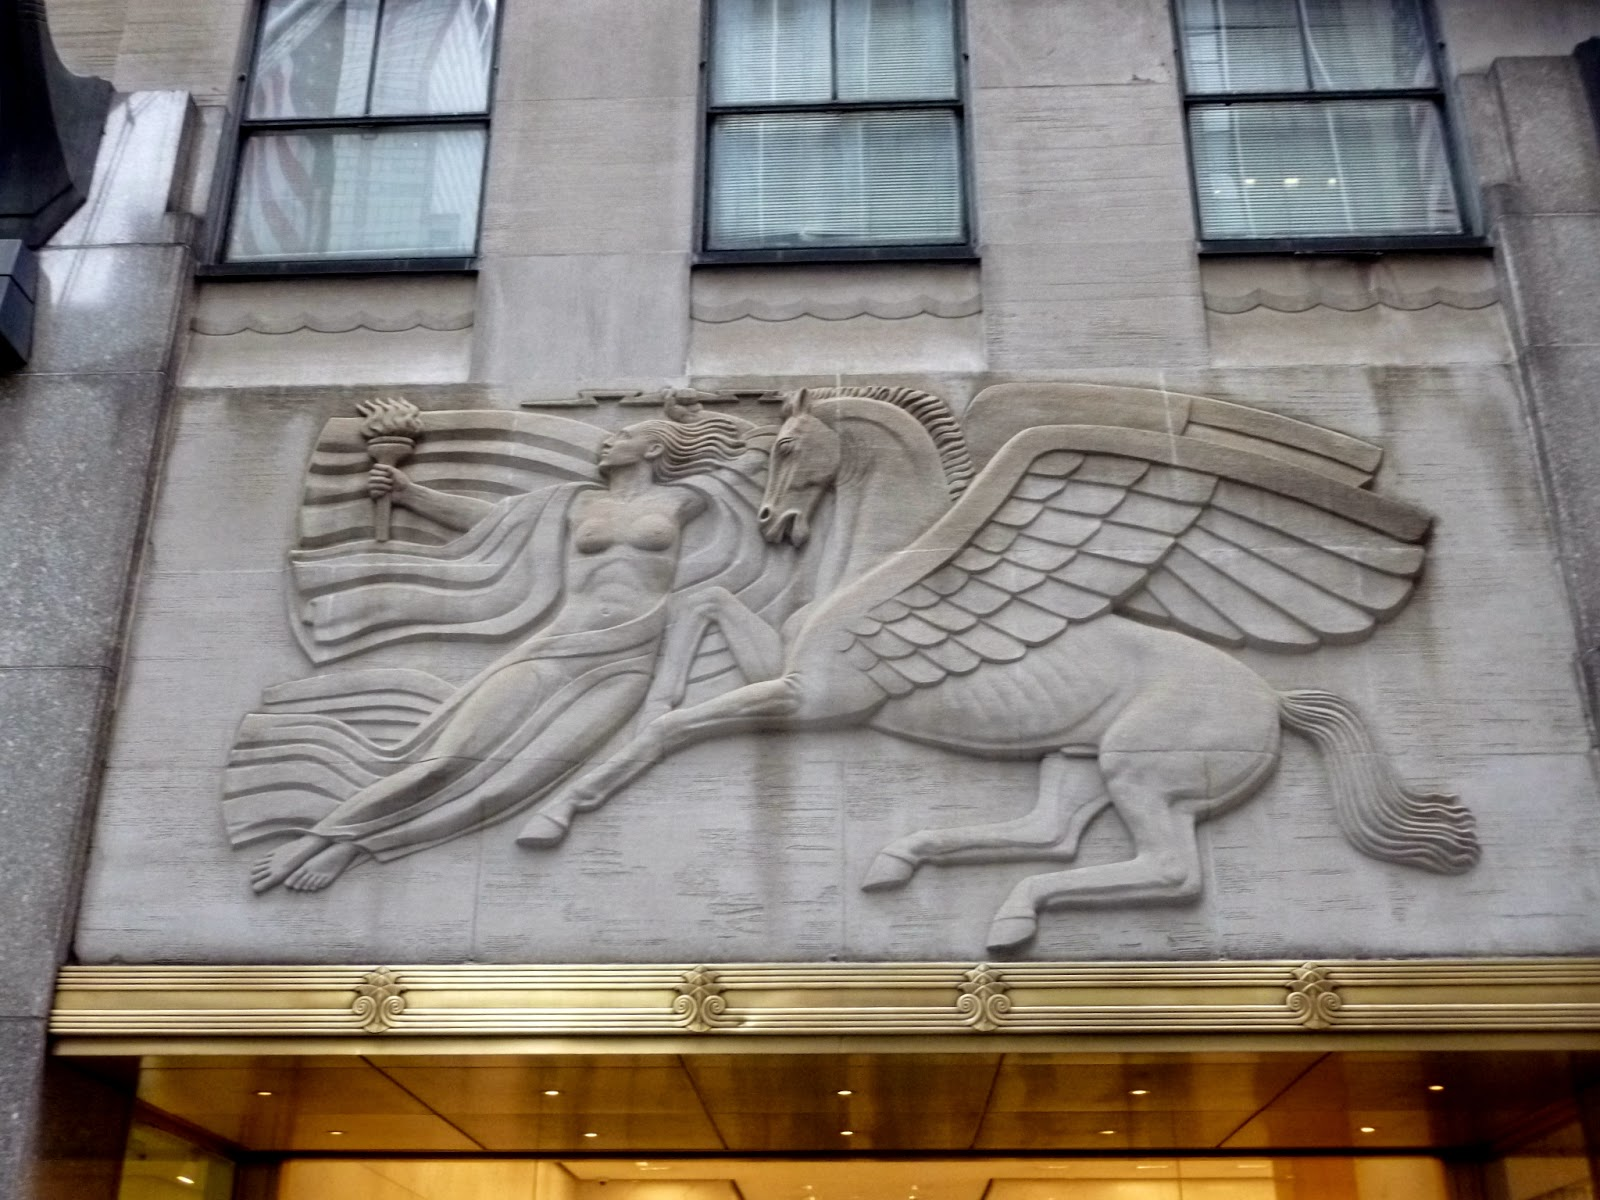 SHCP WH wall - art deco inspiration image5.jpg